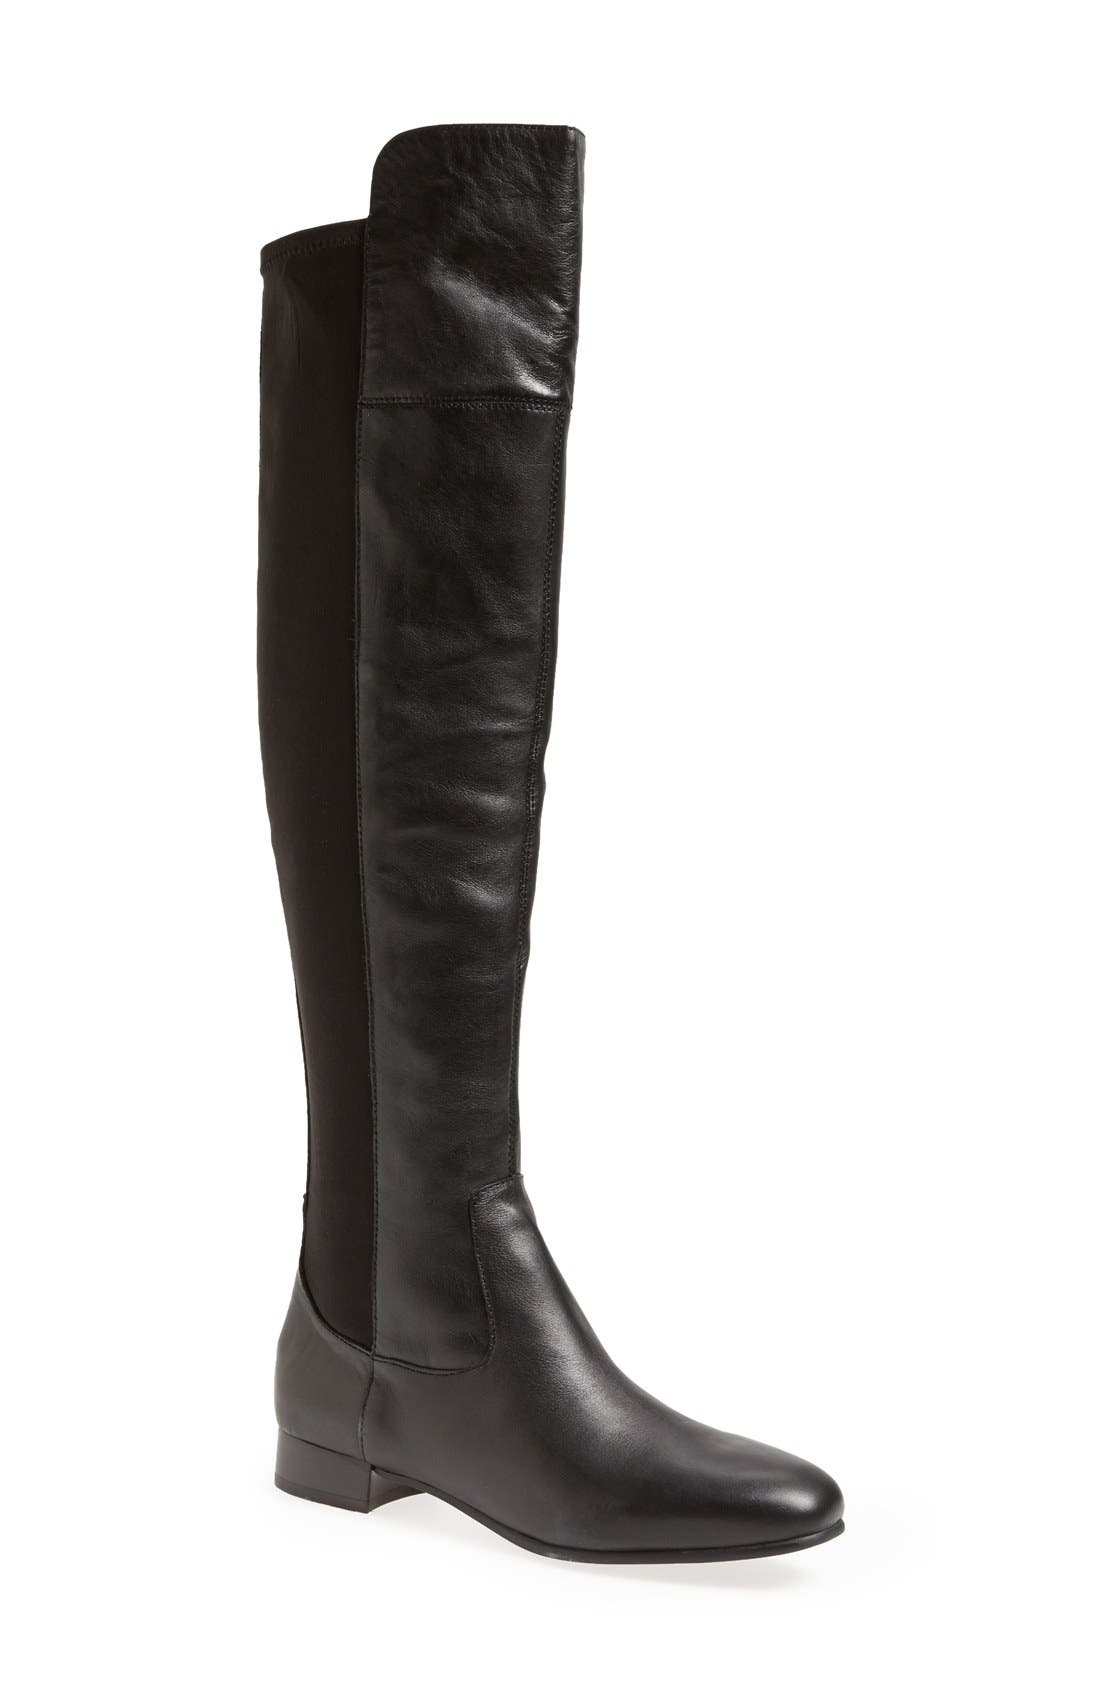 Alternate Image 1 Selected - Louise et Cie 'Andora' Over the Knee Boot (Women)